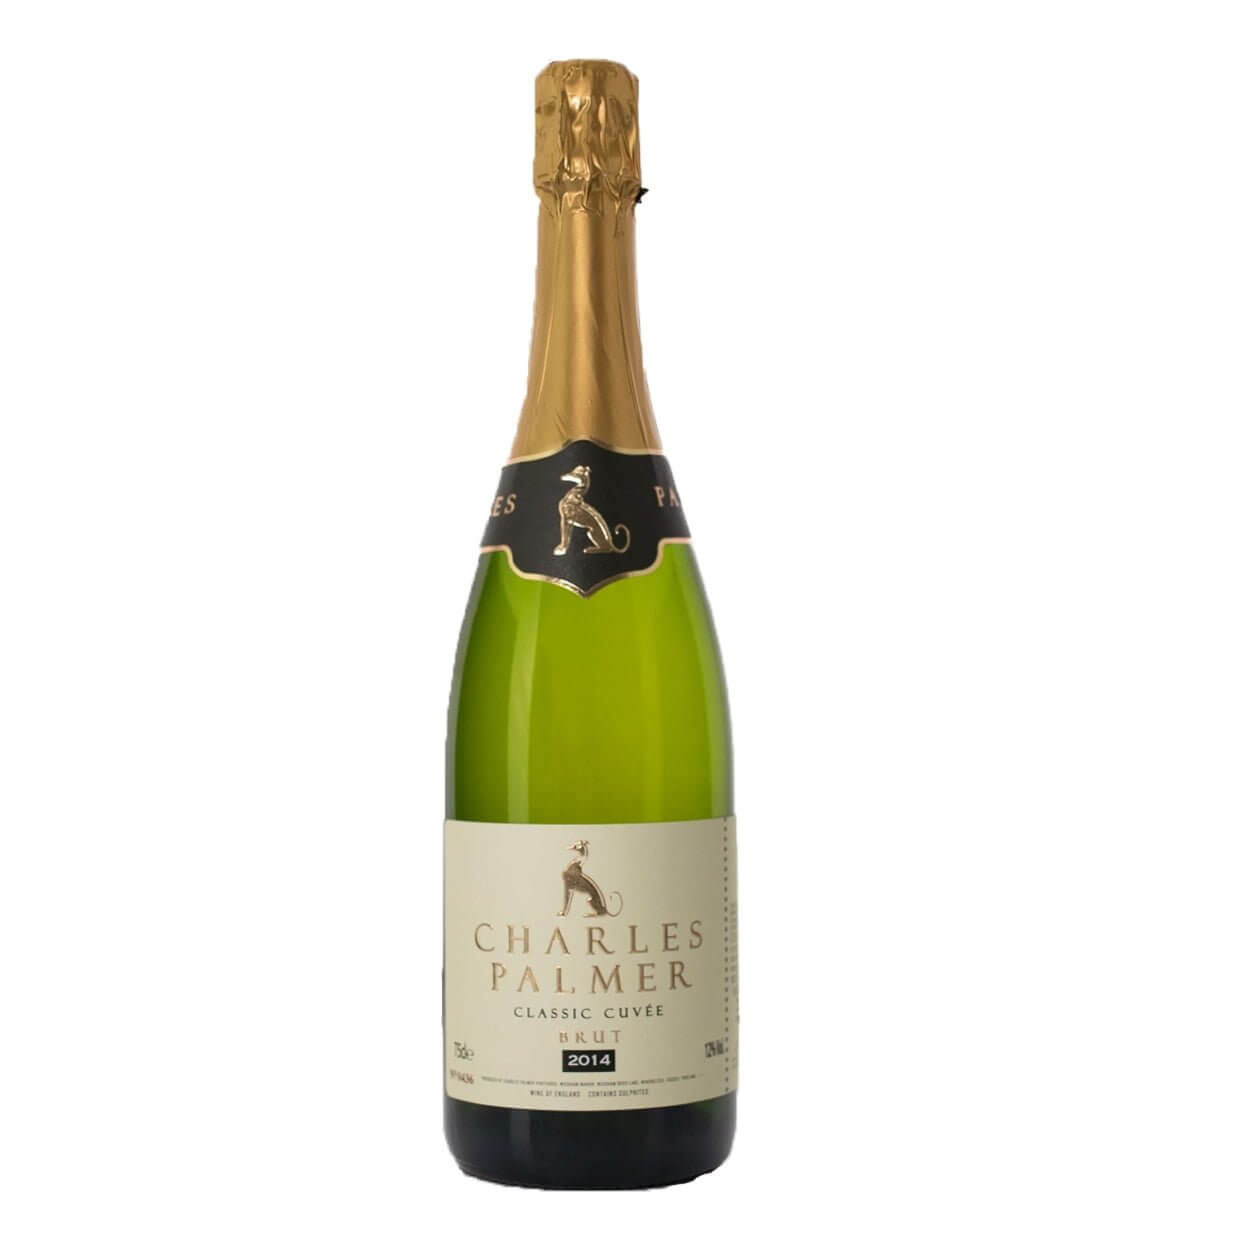 Charles Palmer Classic Cuvée 2014 Sparkling English Wine